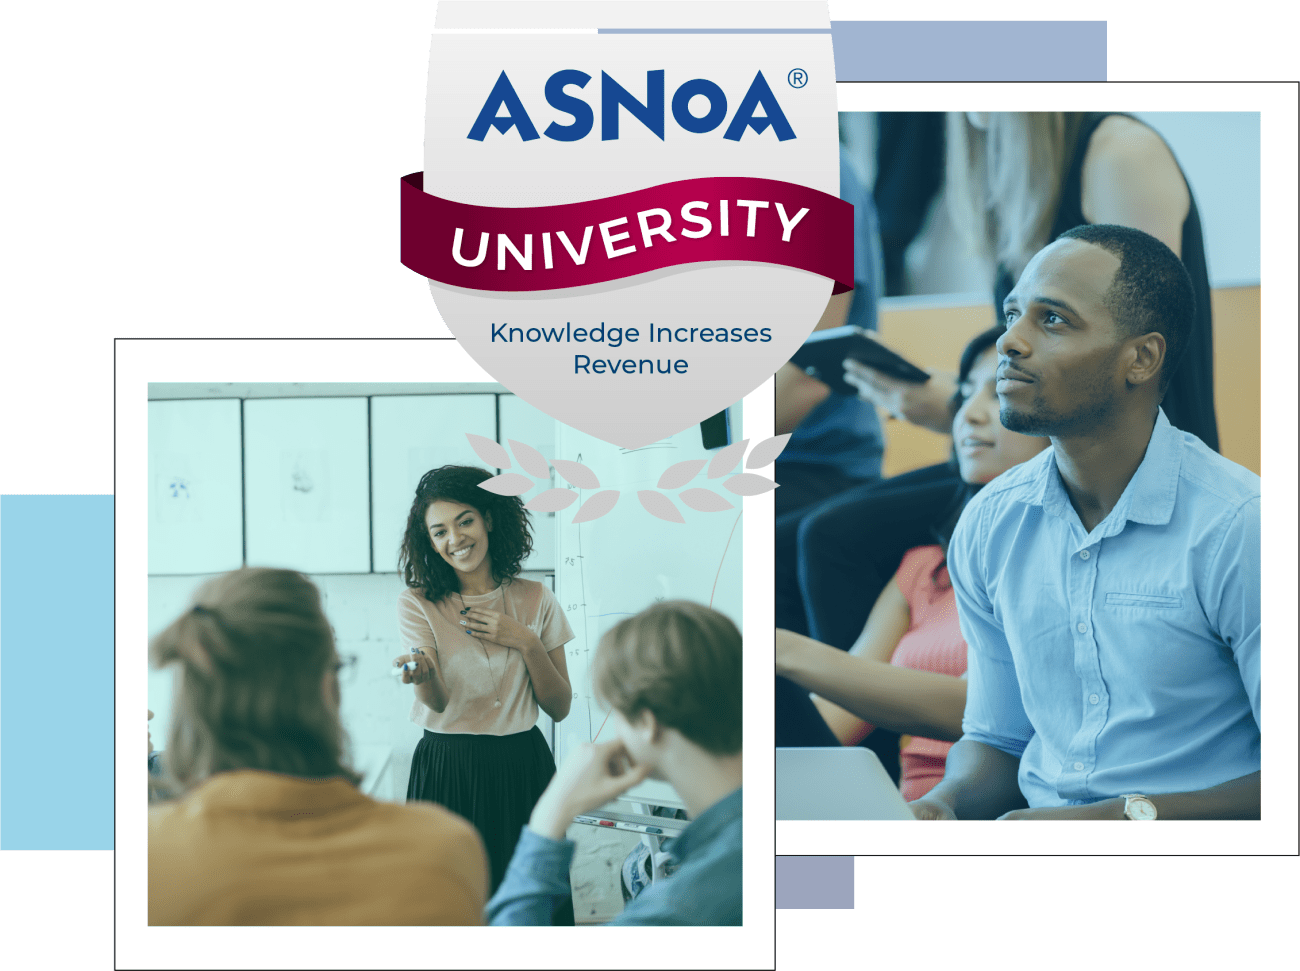 ASNOA University provides insurance agent training